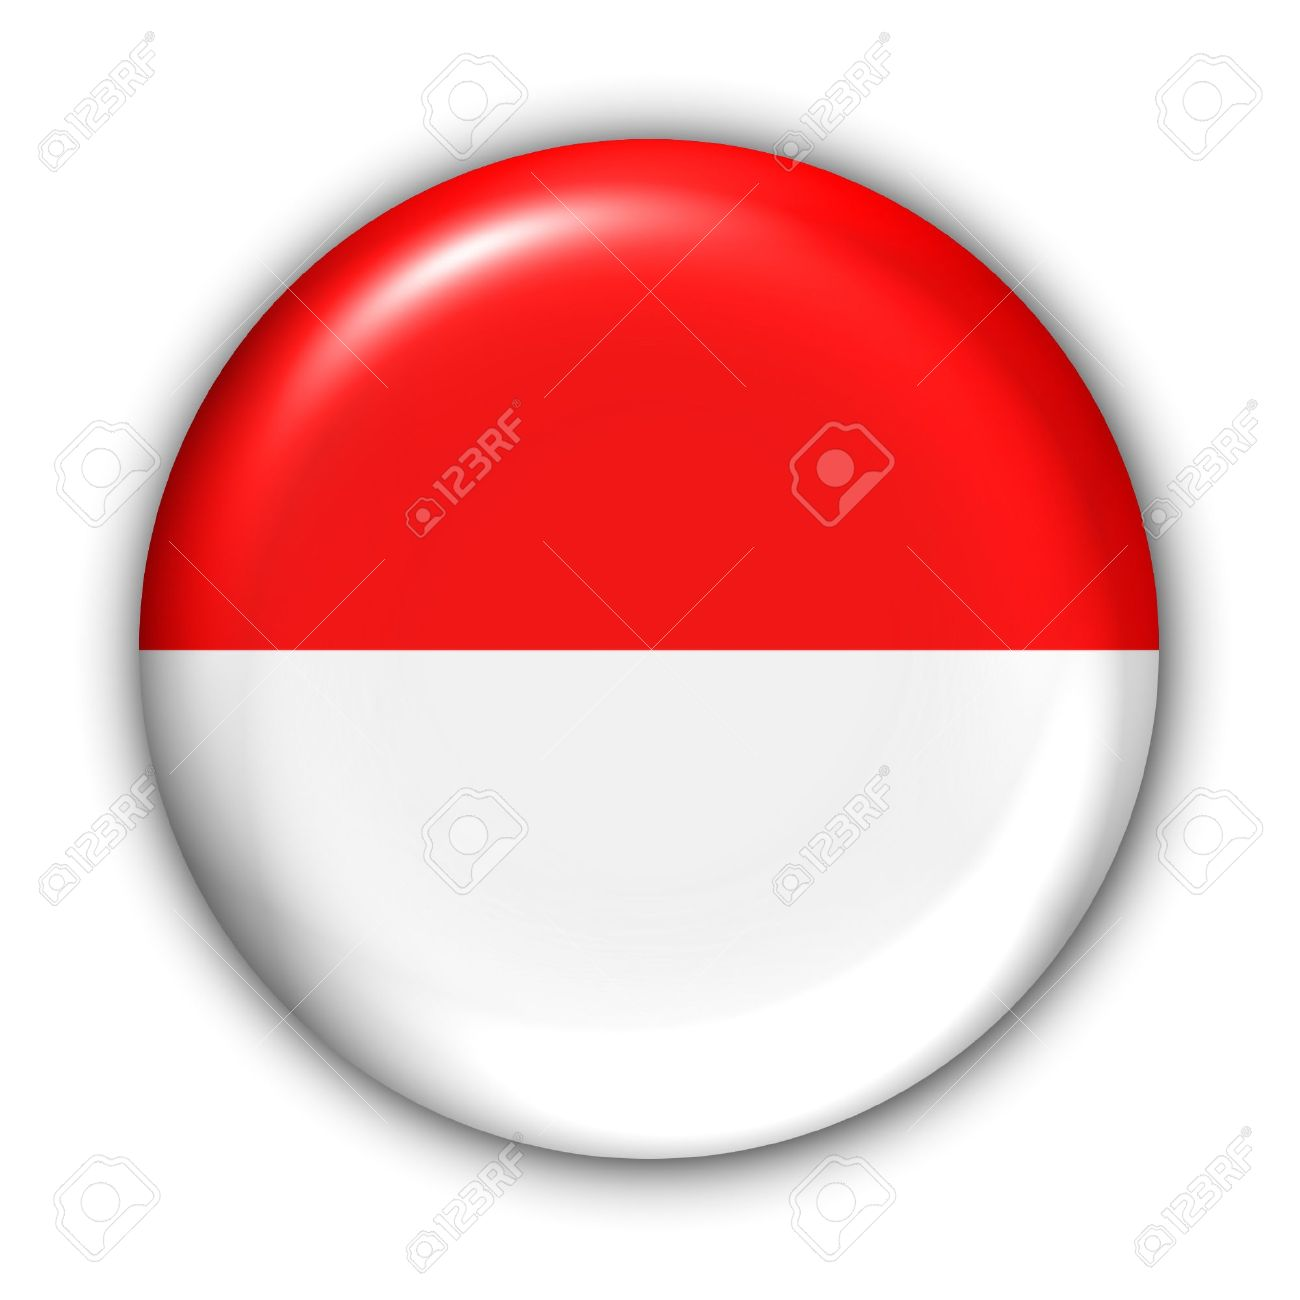 World Flag Button Series - Asia - Indonesia (With Clipping Path) - 373990